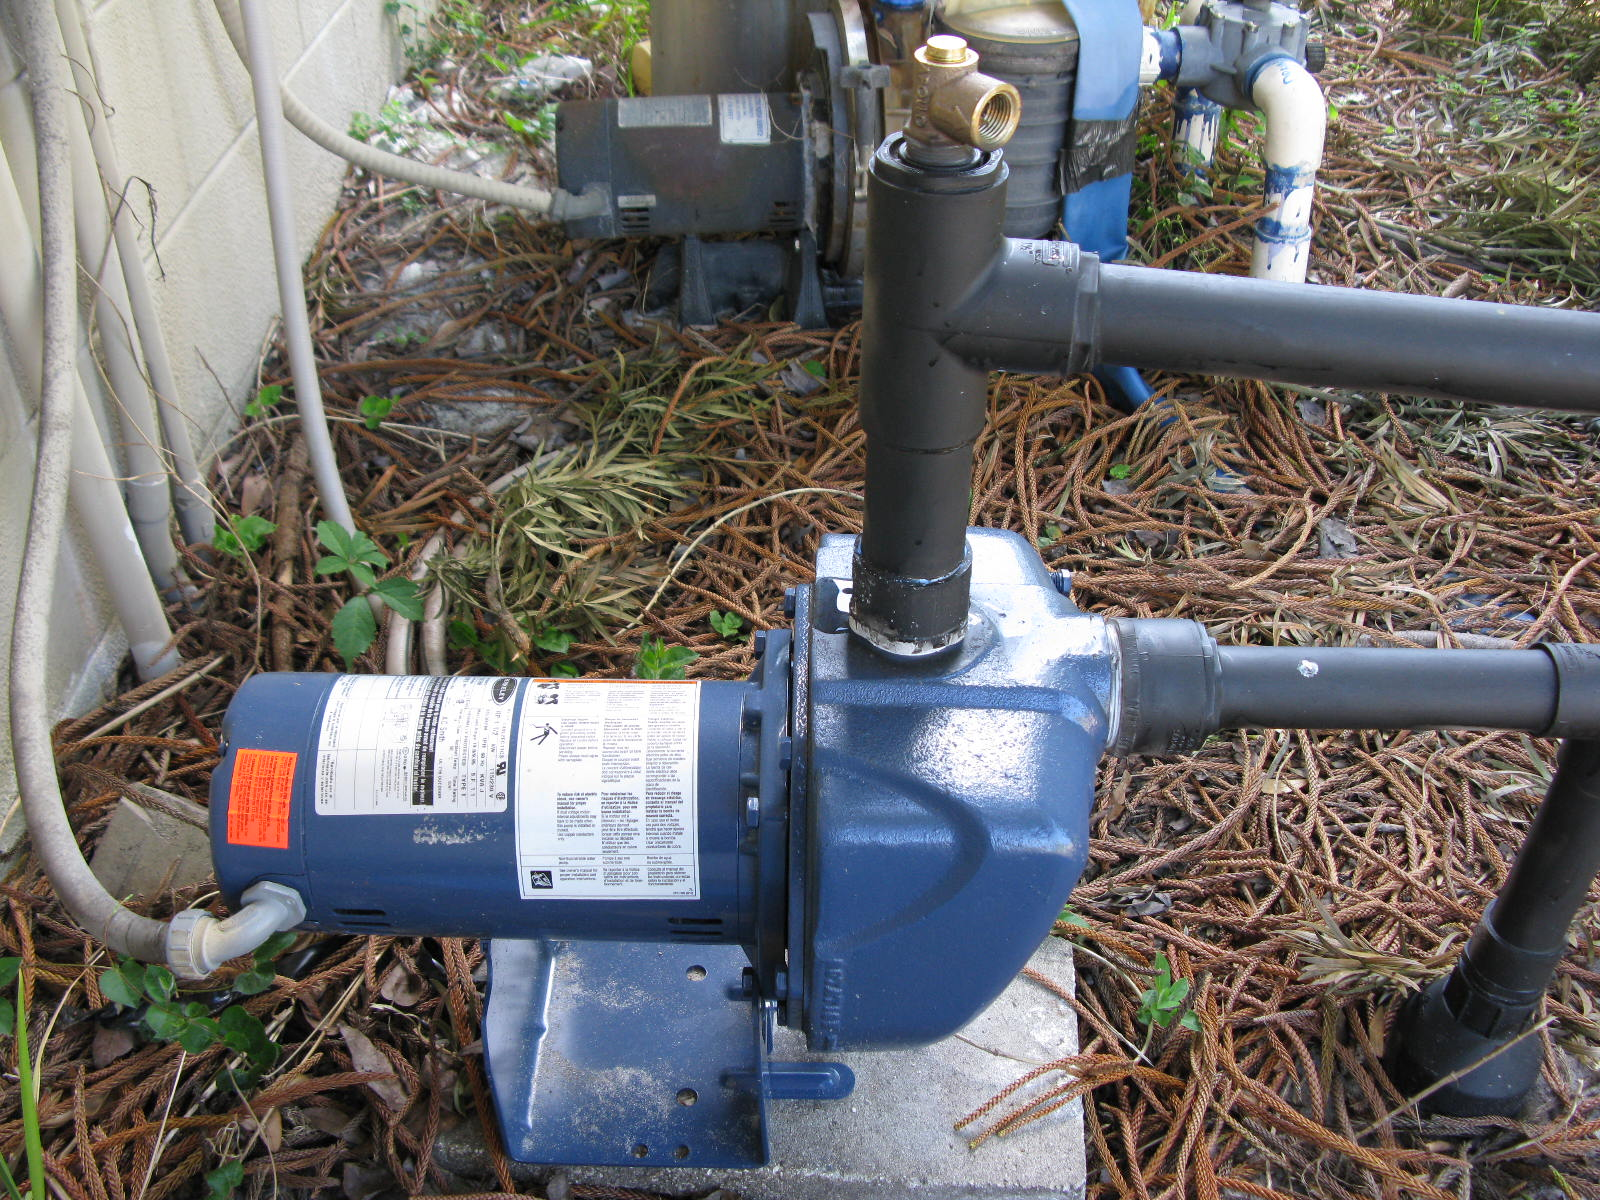 Irrigation Sprinkler System Mp Rotator Nozzle Retrofit. Foods To Combat Heartburn Blown Glass Awards. How To Treat Croup Cough Irs Tax Liens Search. What Is Depakote Used For Dish Network Quote. Cable Management Services File For Llc Online. South Orange County Wastewater Authority. How To Update Brick Fireplace. Golf Schools In Naples Florida. Internet Marketing Tips Graduate Degree Loans